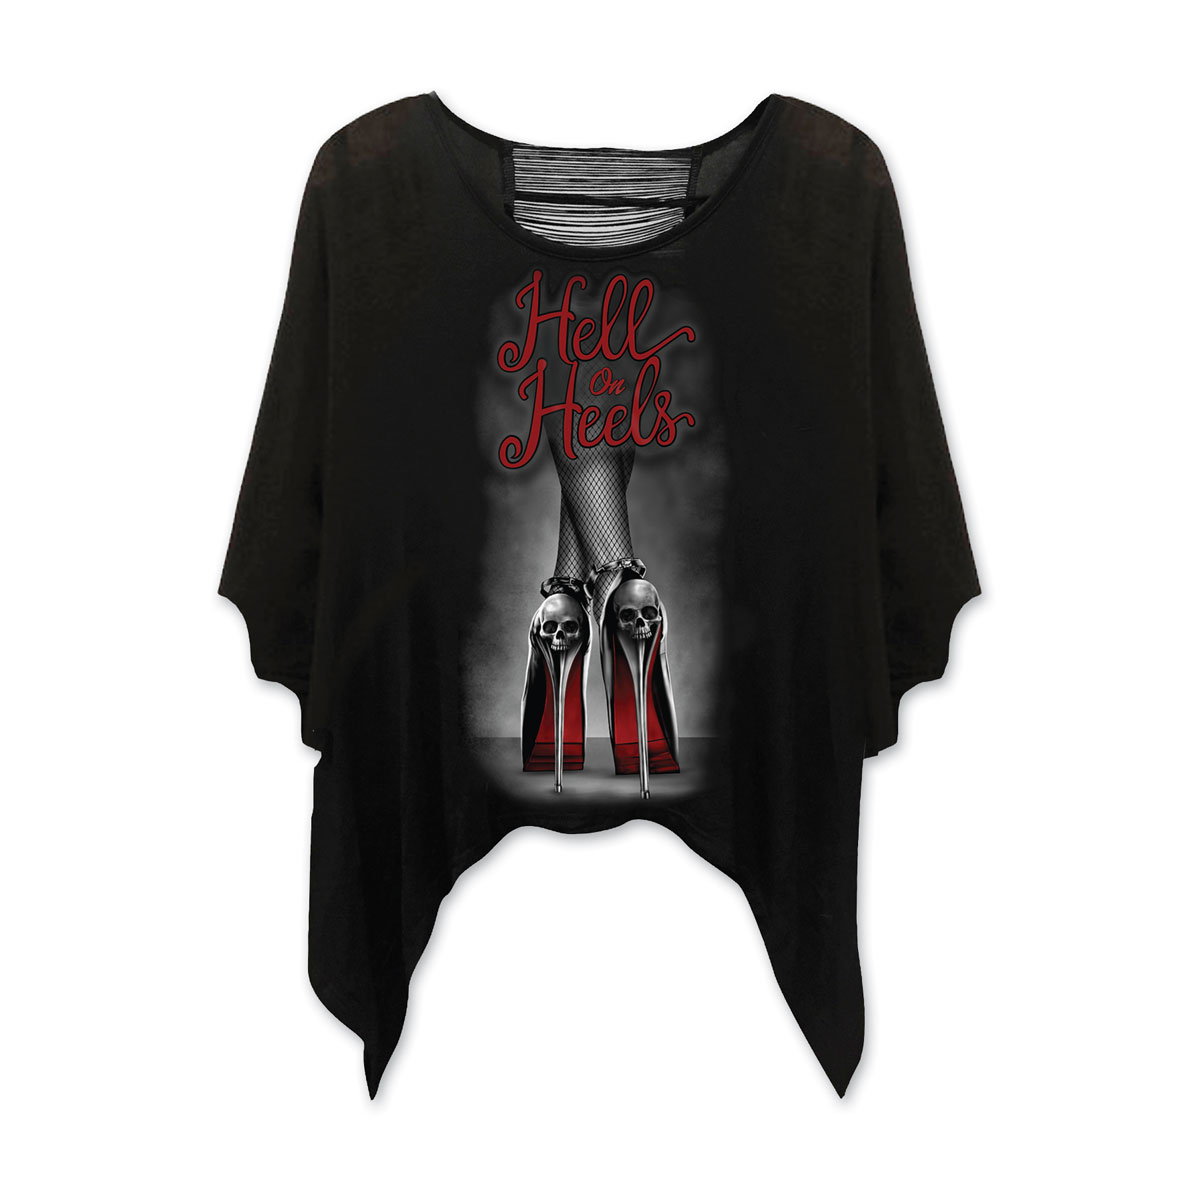 Lethal Angel Women's Hell On Heels Drape Sleeve Black Shirt